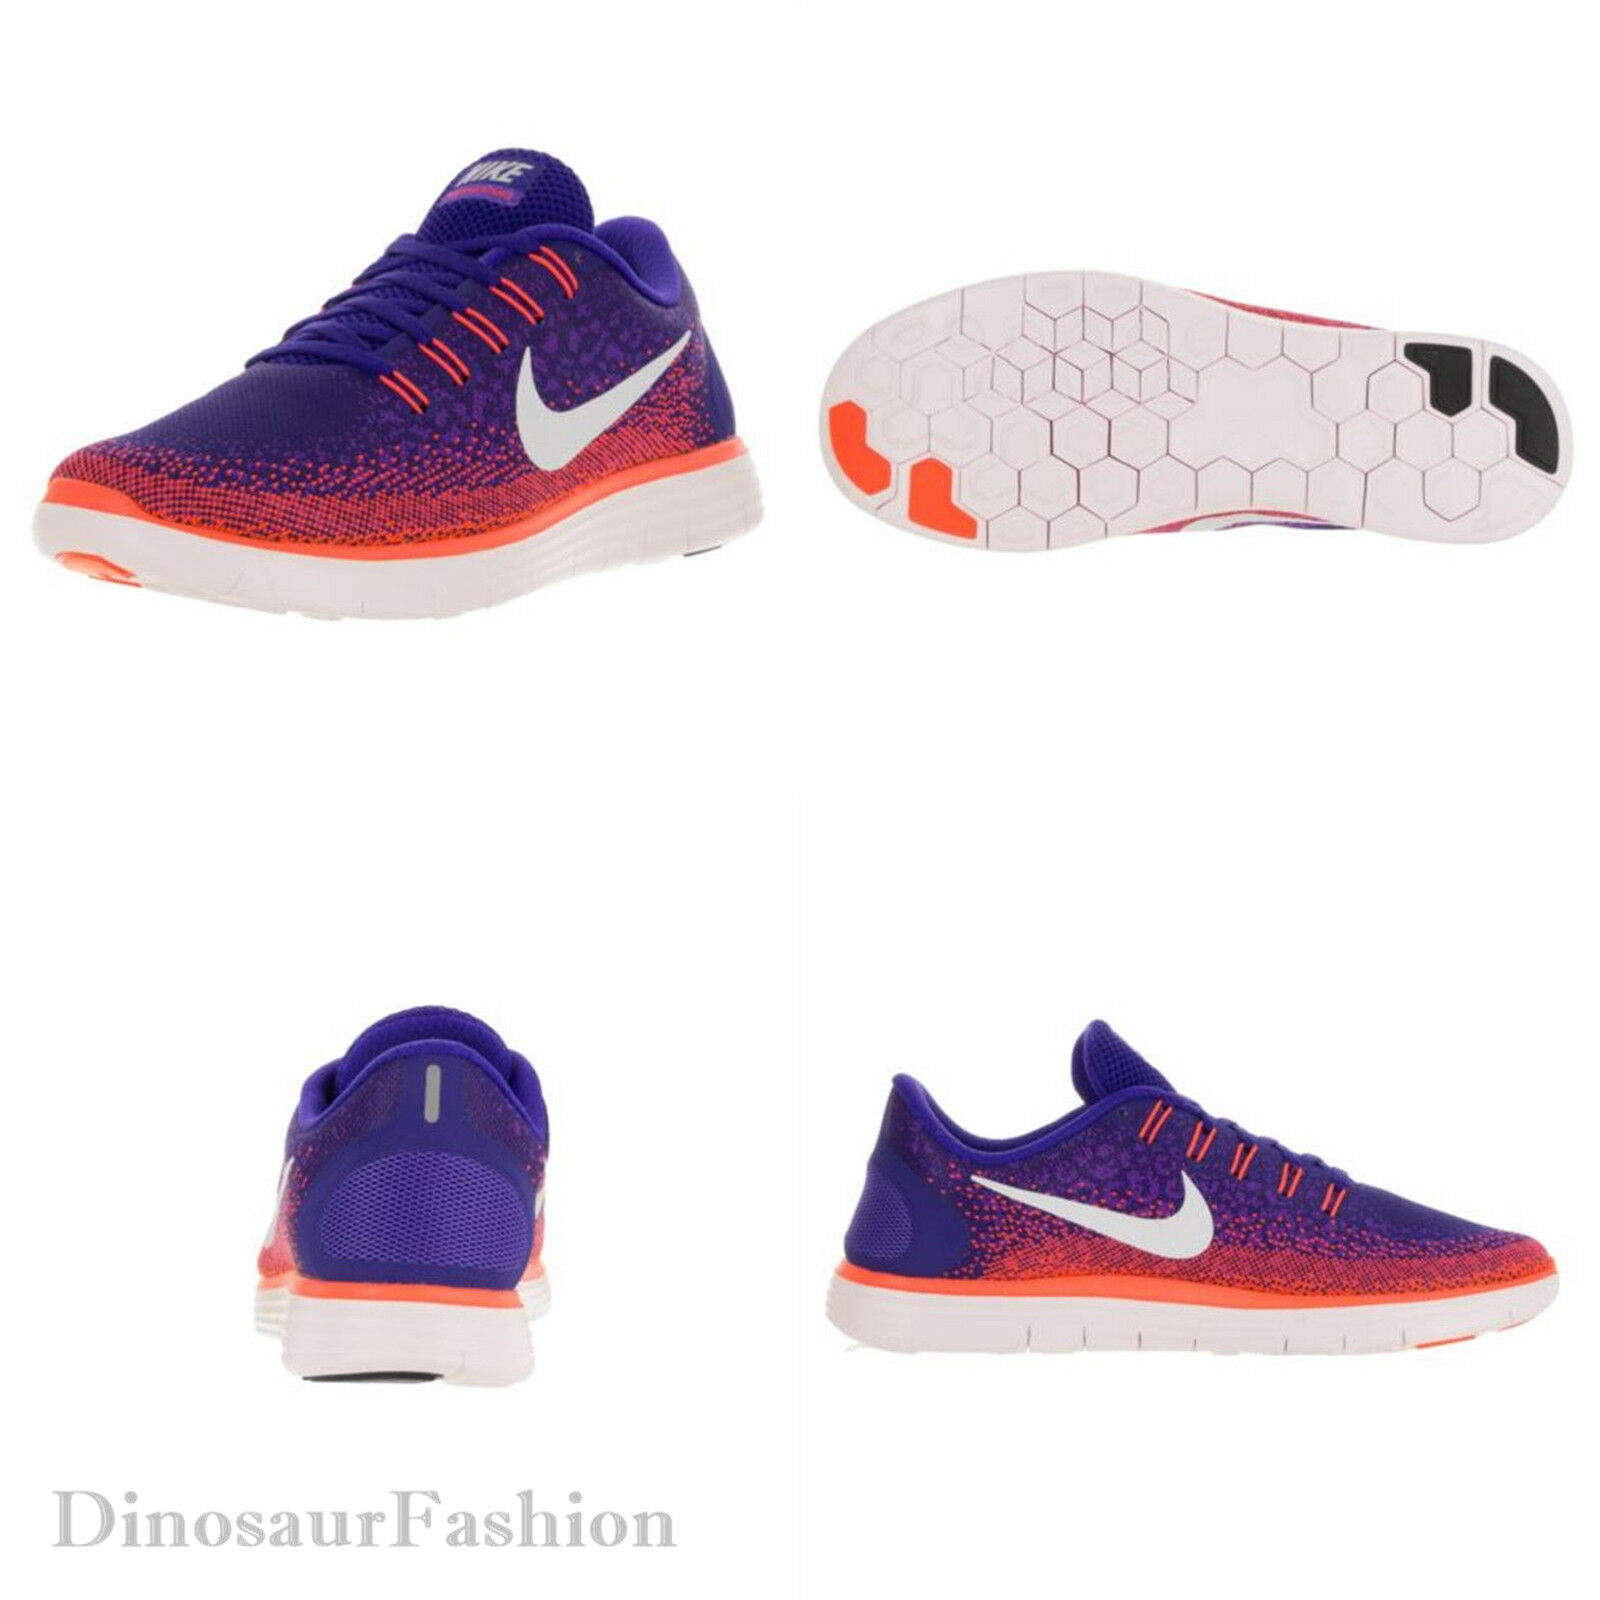 NIKE Men'S FREE RN DISTANCE (827115 - 402) Running Shoes,New with Box